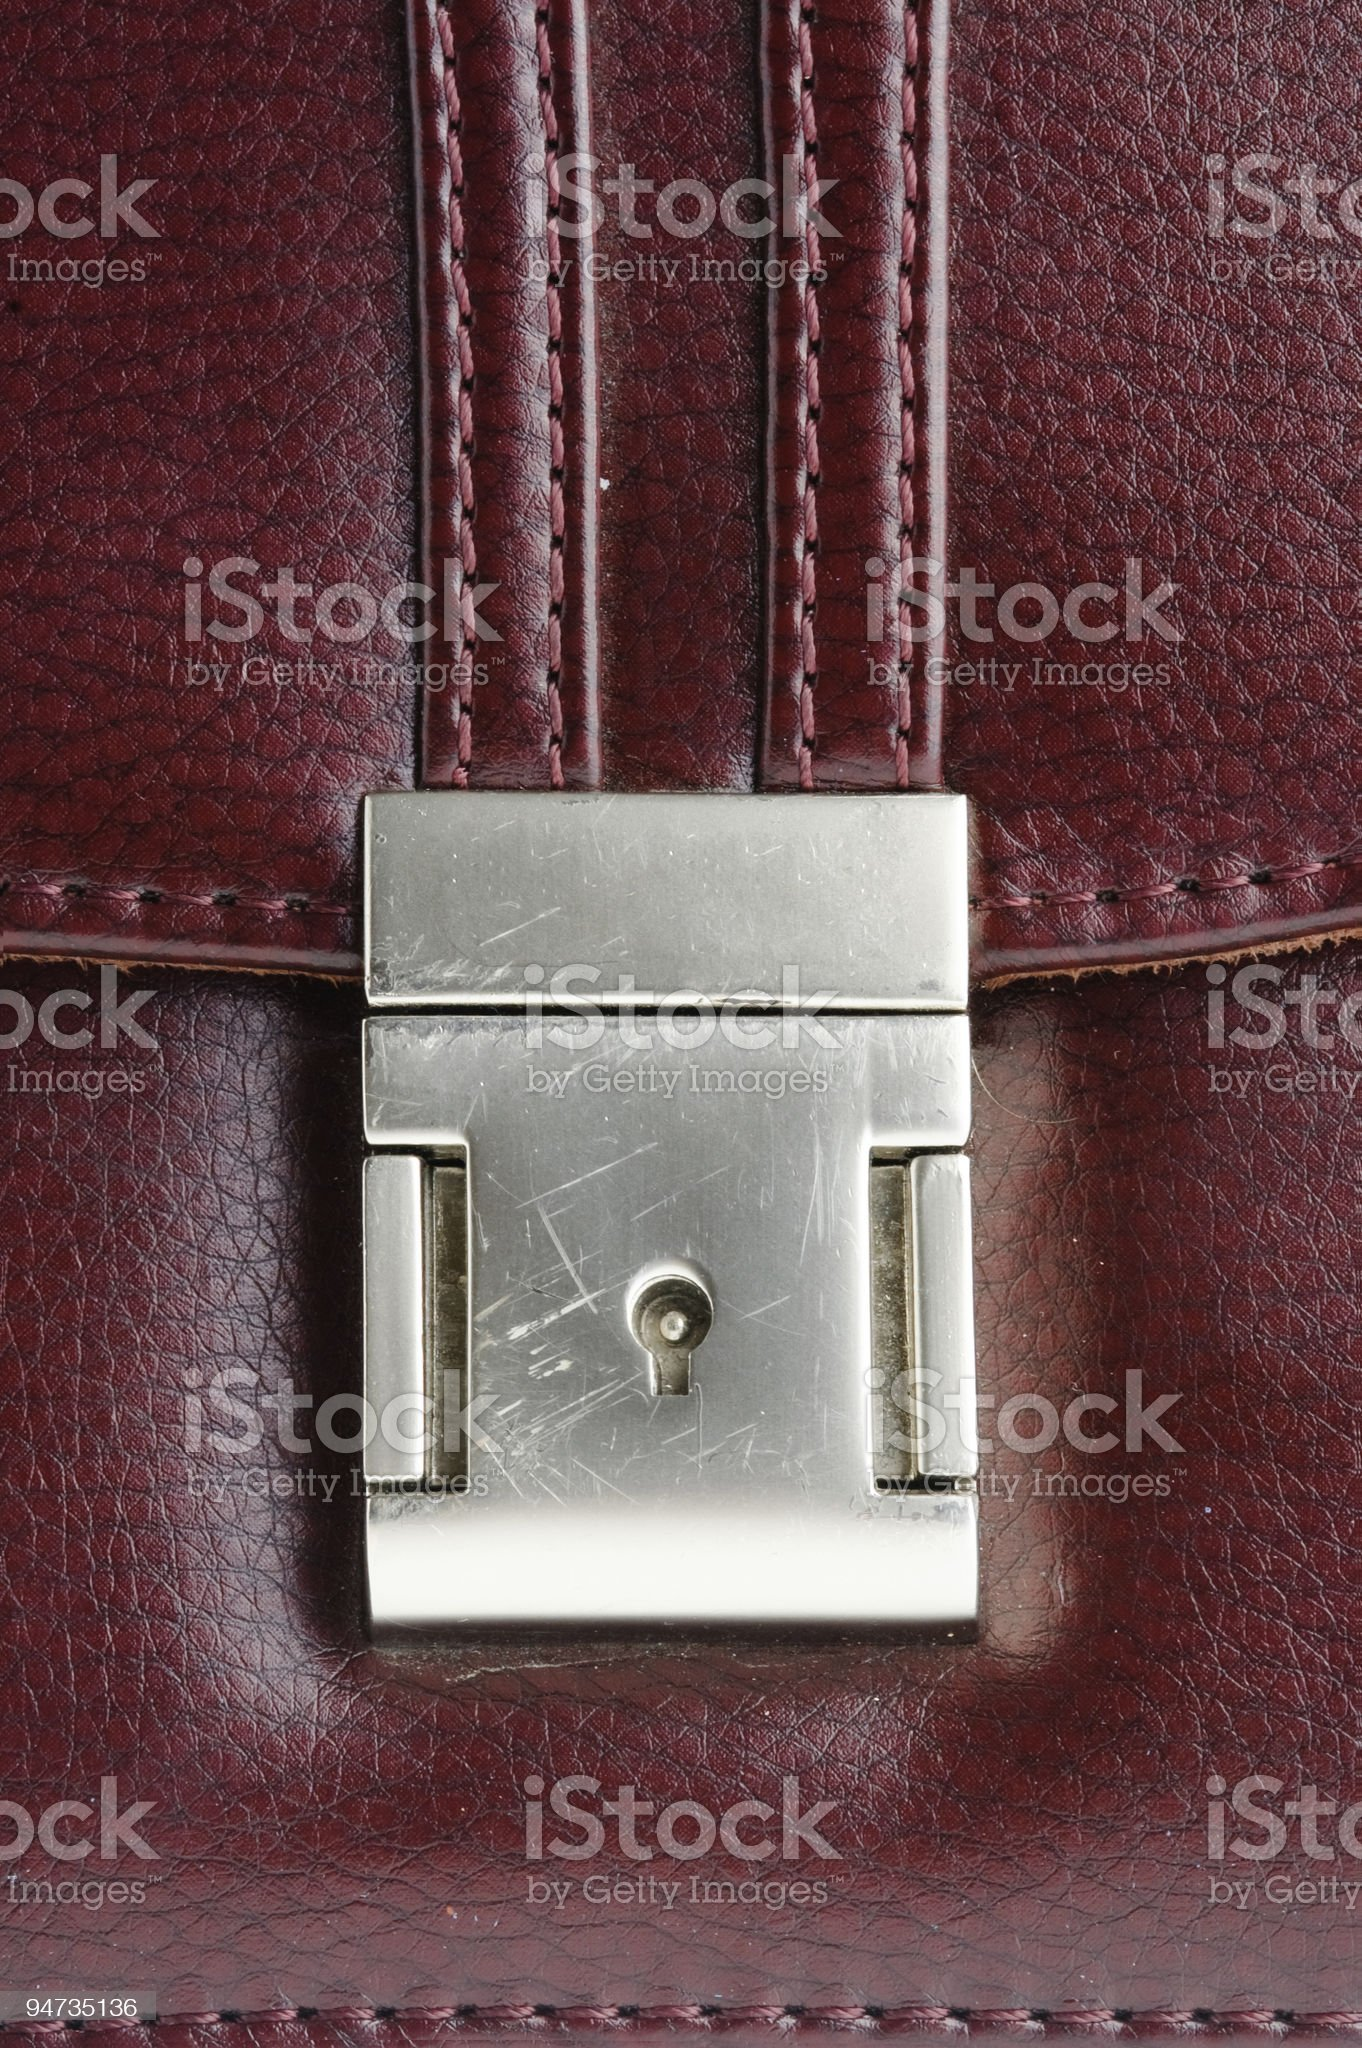 close-up genuine leather background royalty-free stock photo